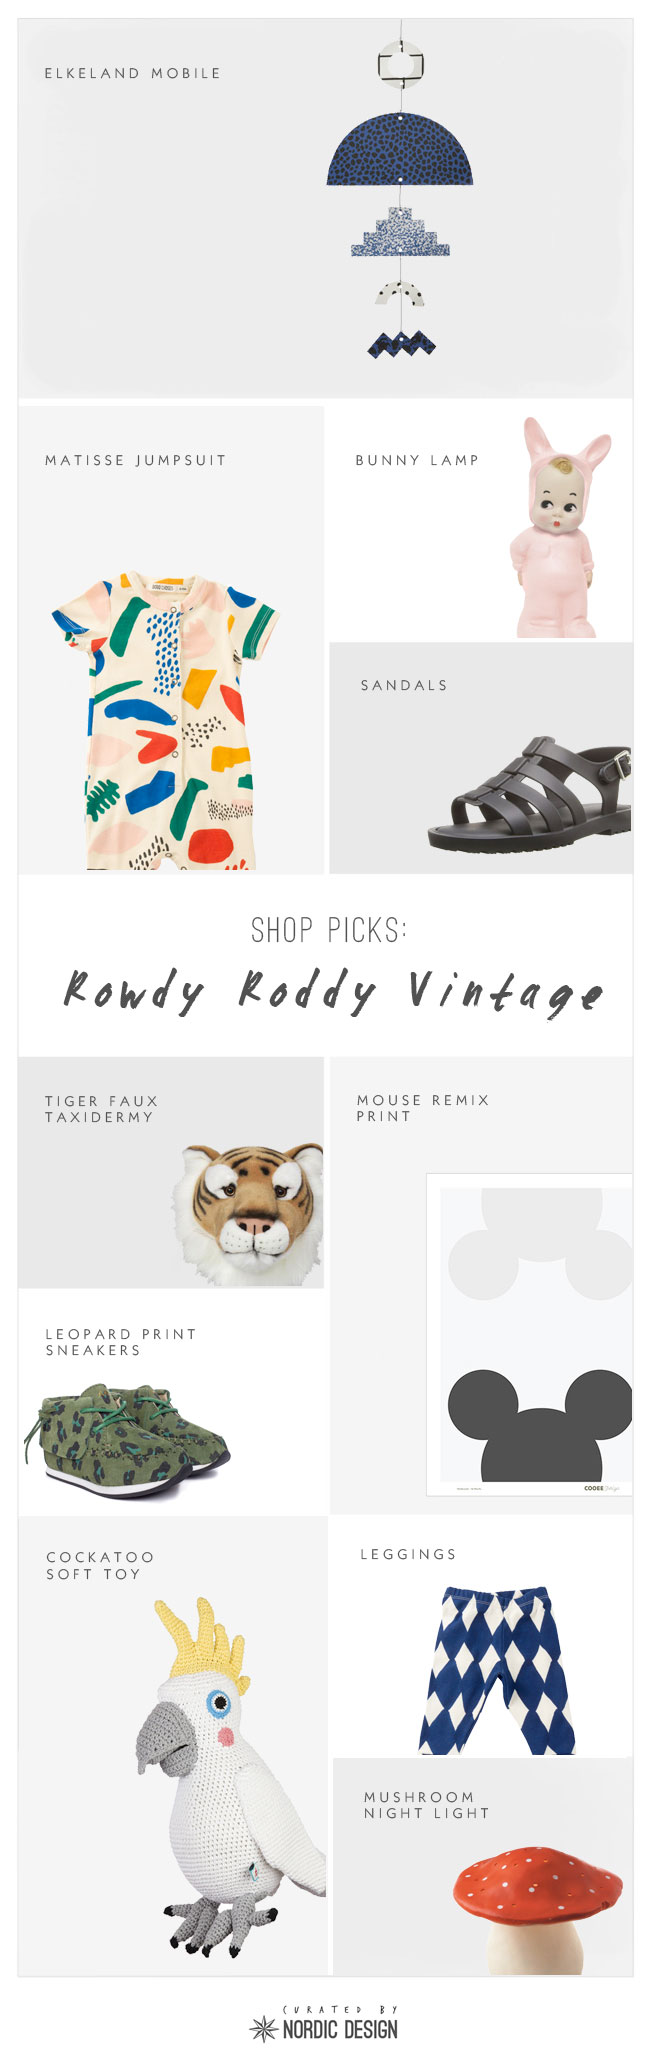 Shop-picks-ROWDYRODDYVINTAGE-02